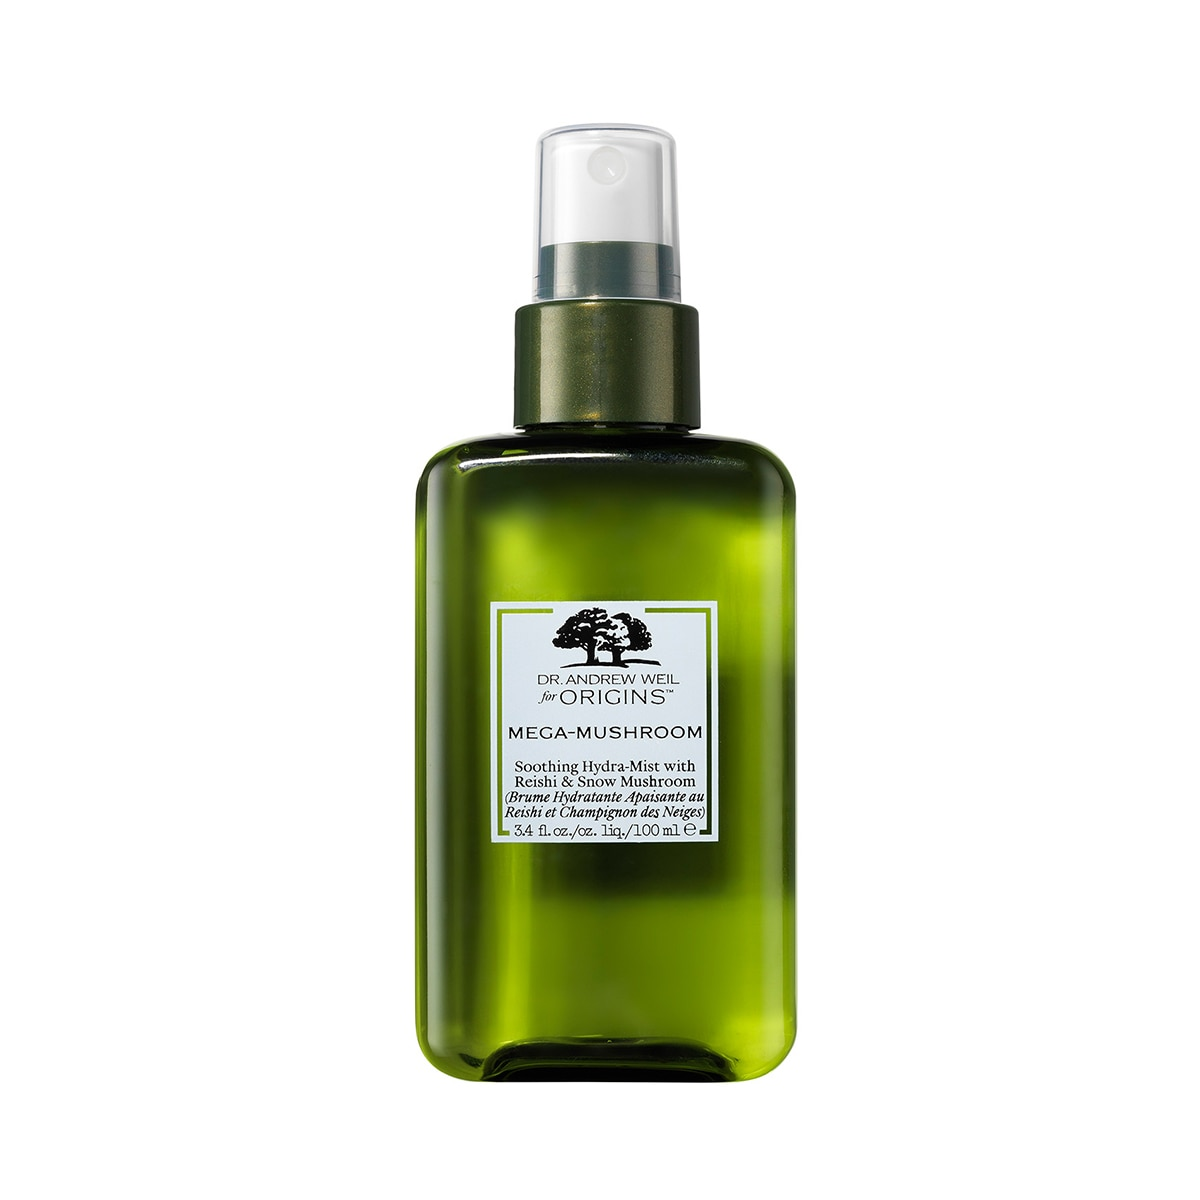 DR. ANDREW WEIL FOR ORIGINS™ MEGAMUSHROOM SOOTHING HYDRA-MIST WITH REISHI AND SNOW MUSHROOM